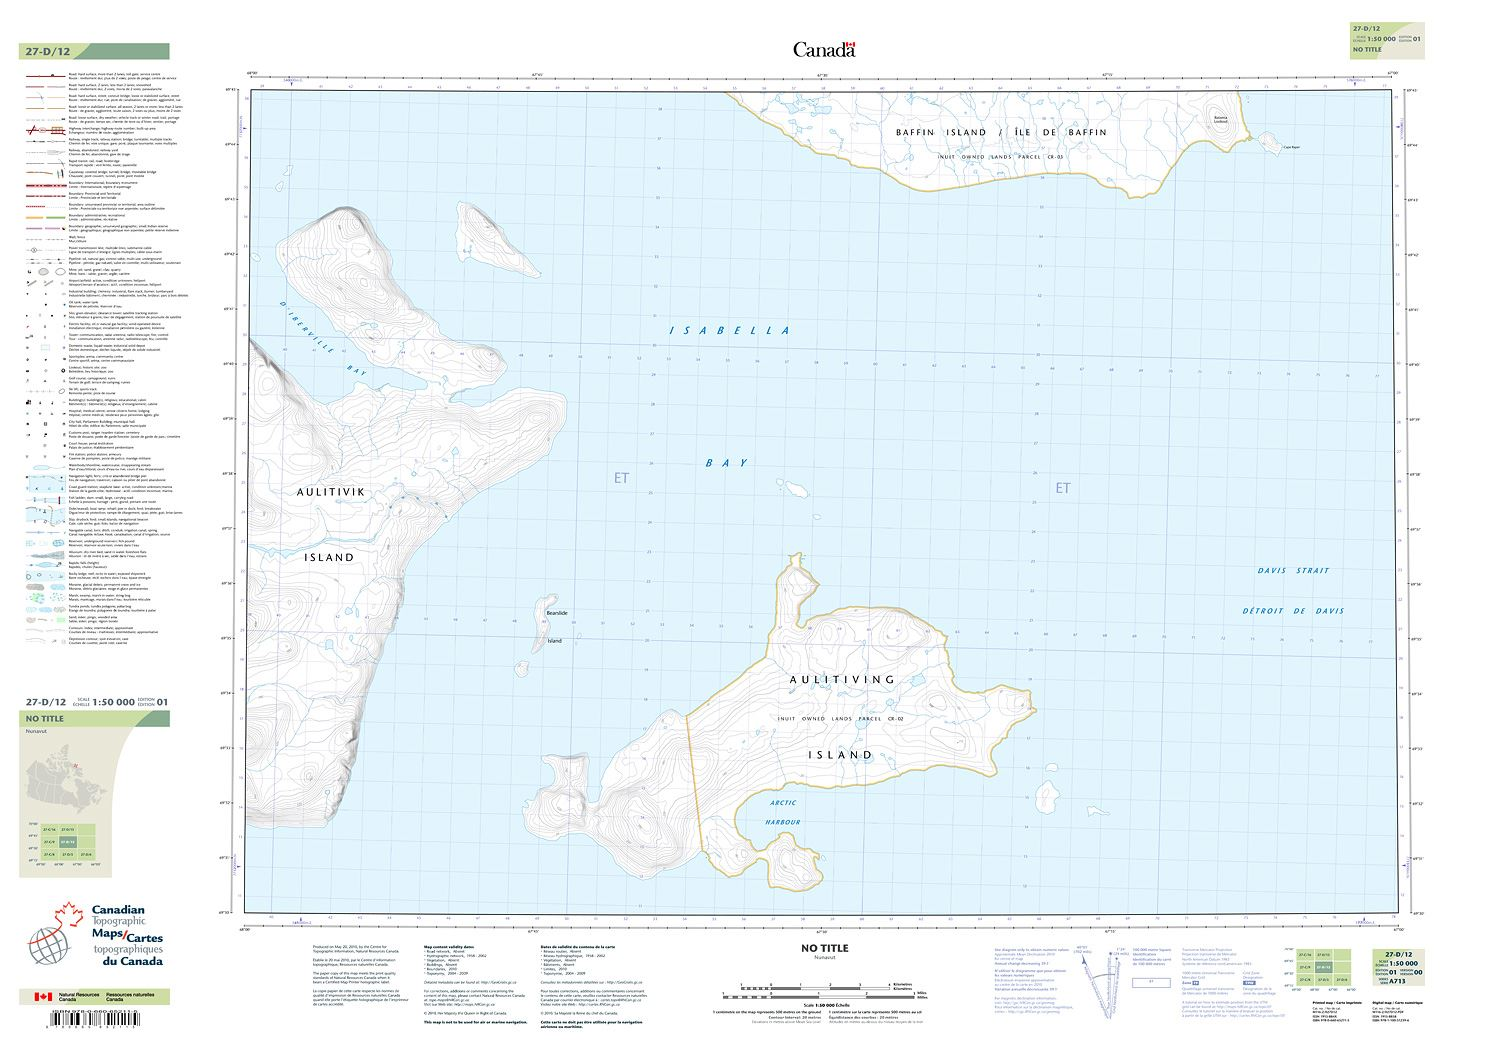 027d12 Aulitiving Island Topographic Map